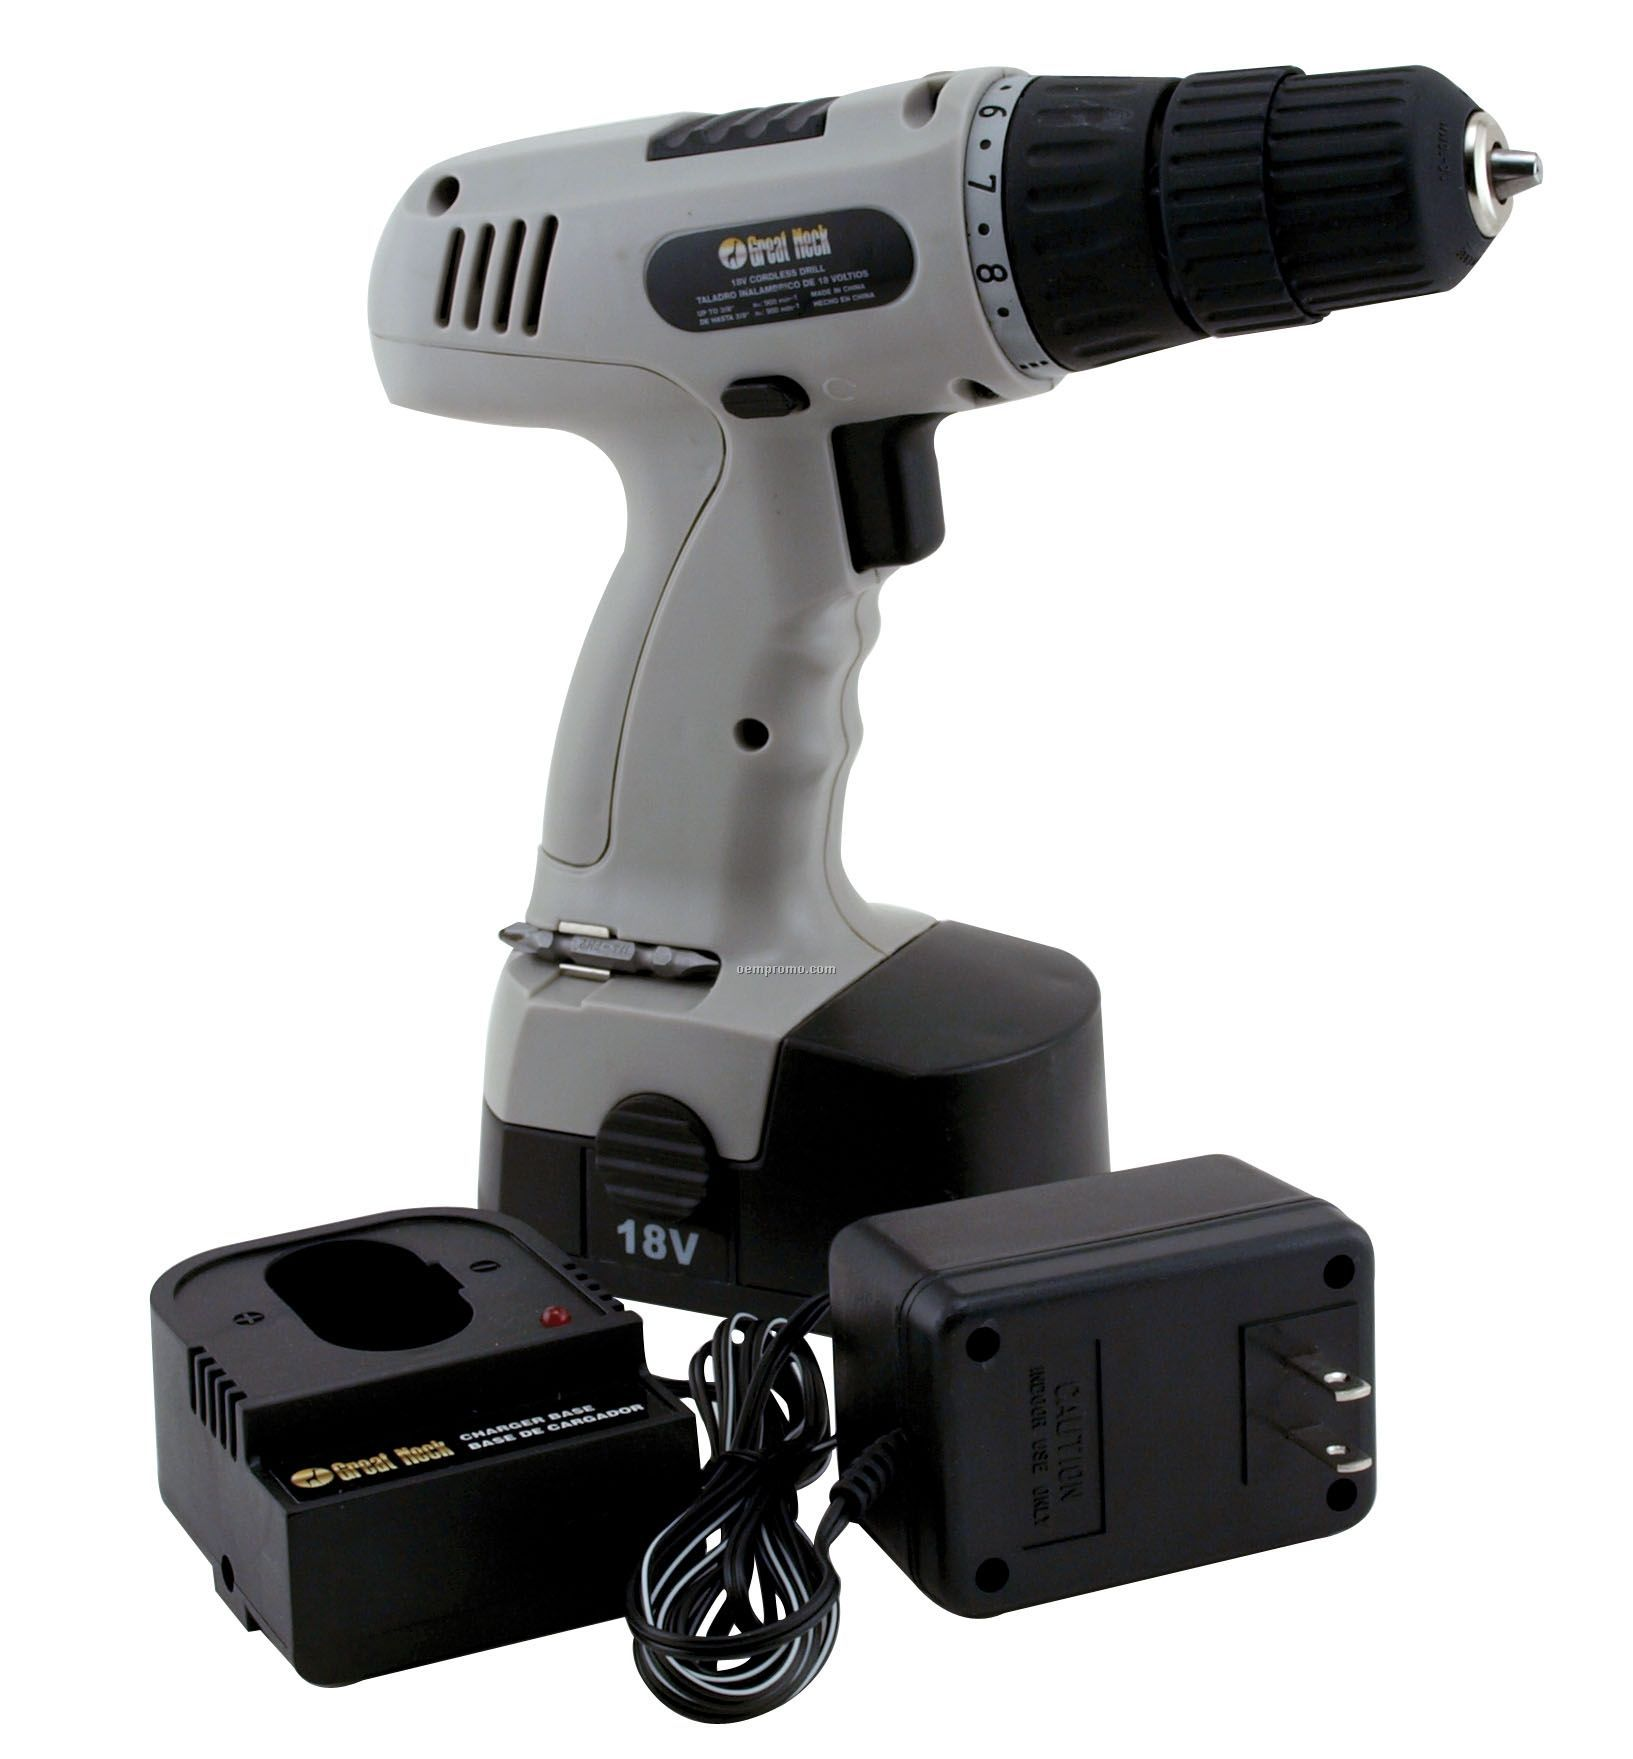 Rechargeable Cordless Drill (18 Volt)